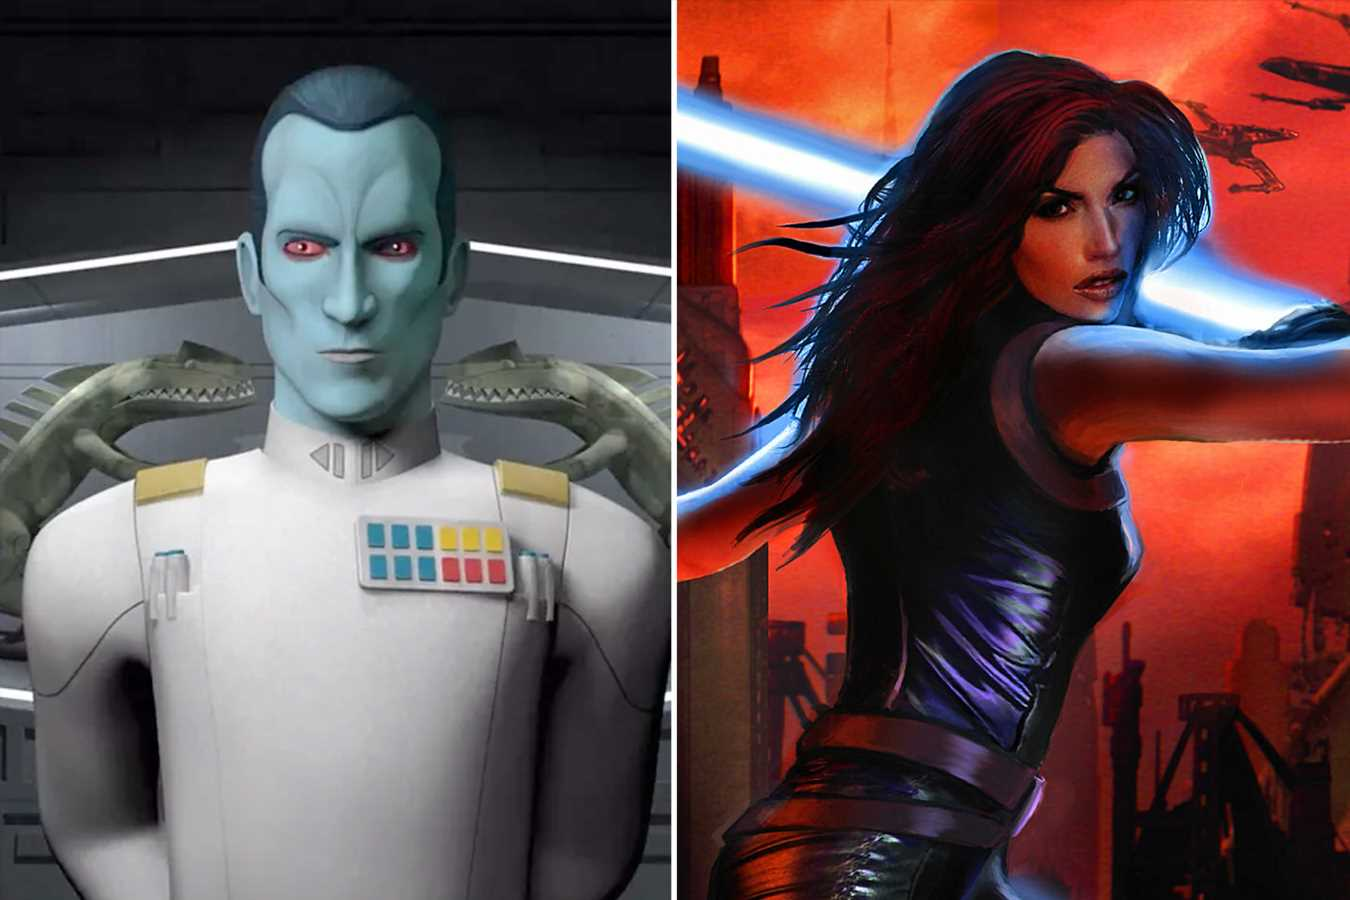 Jon Favreau on whether Thrawn, Mara Jade could be in The Mandalorian